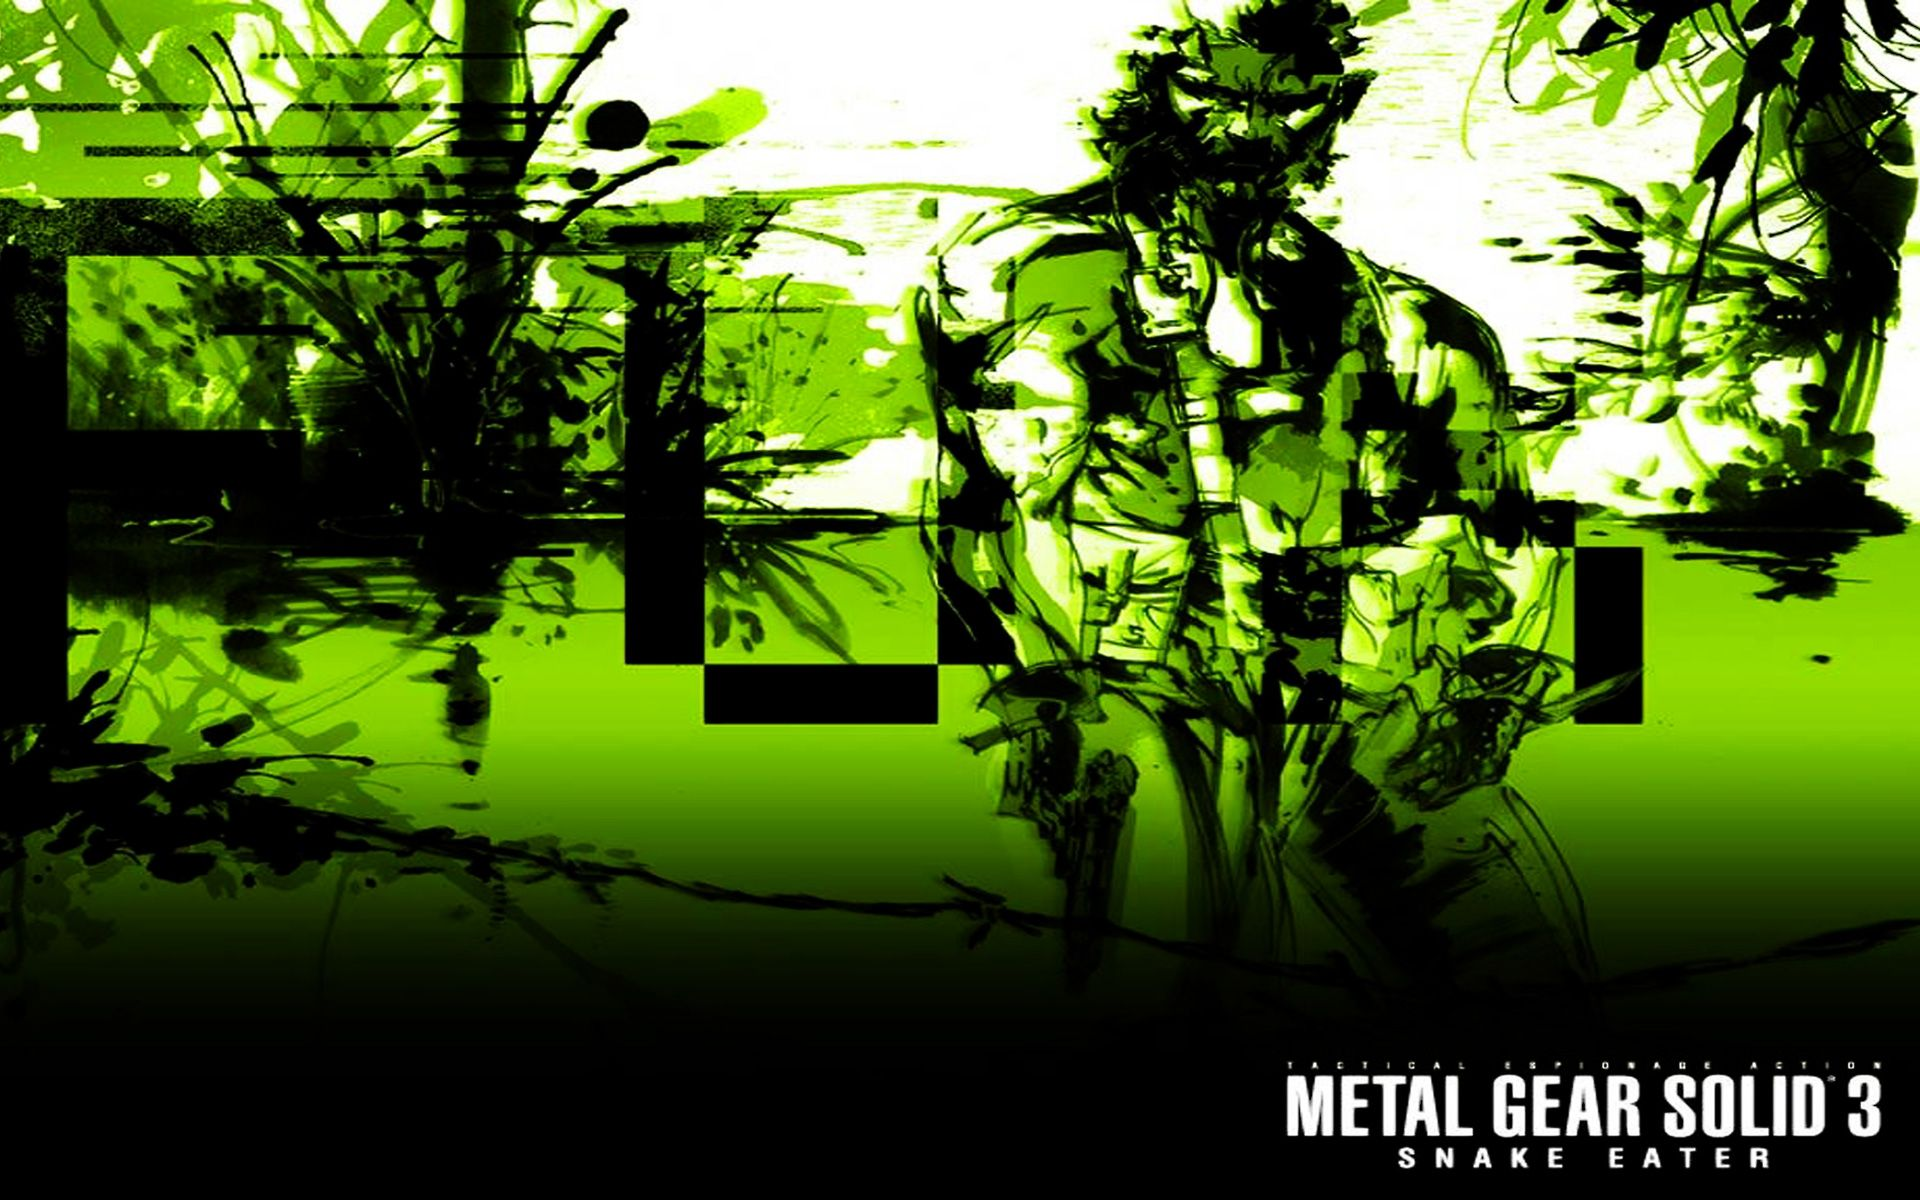 Metal Gear Solid Snake Eater HD Wallpapers Backgrounds 1920x1200 27